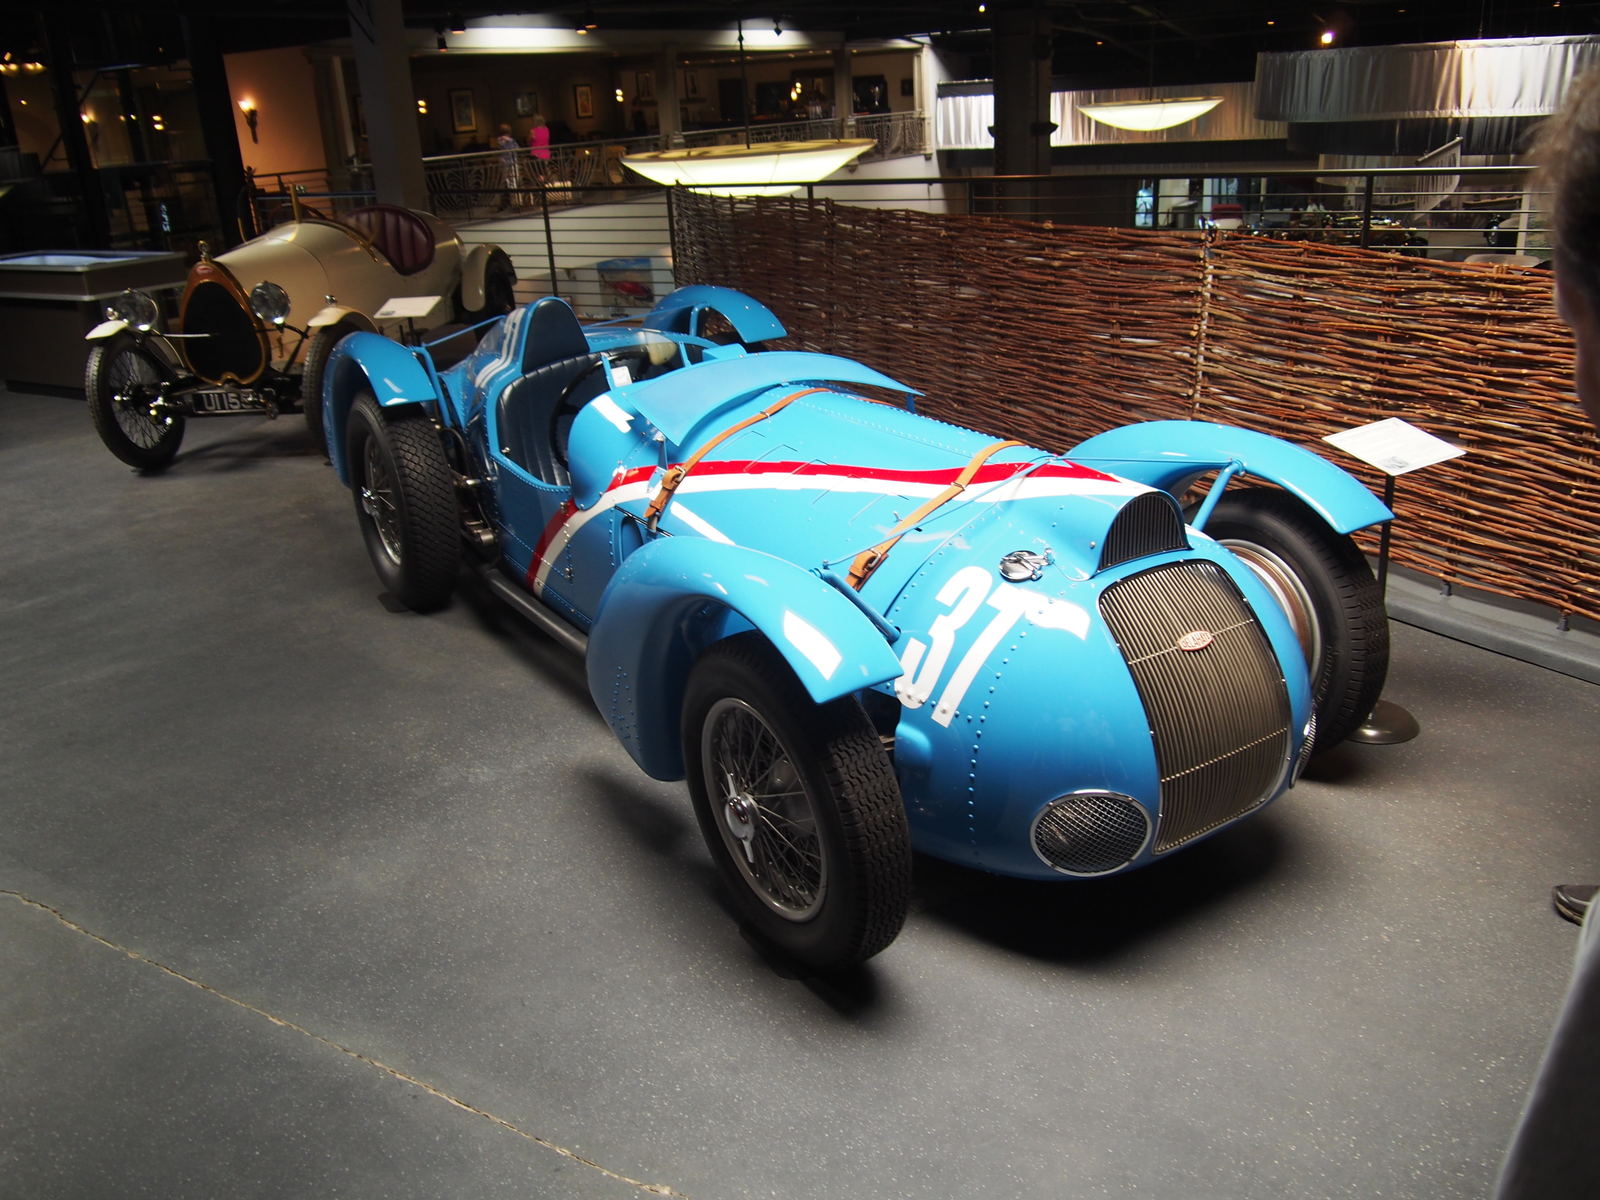 This car was a real treat to see. One of the most important race cars ever built in France, this is the 1937 Delahaye Type 145 V12 Grand Prix that won the Prix Du Million with Rene Dreyfus behind the wheel.